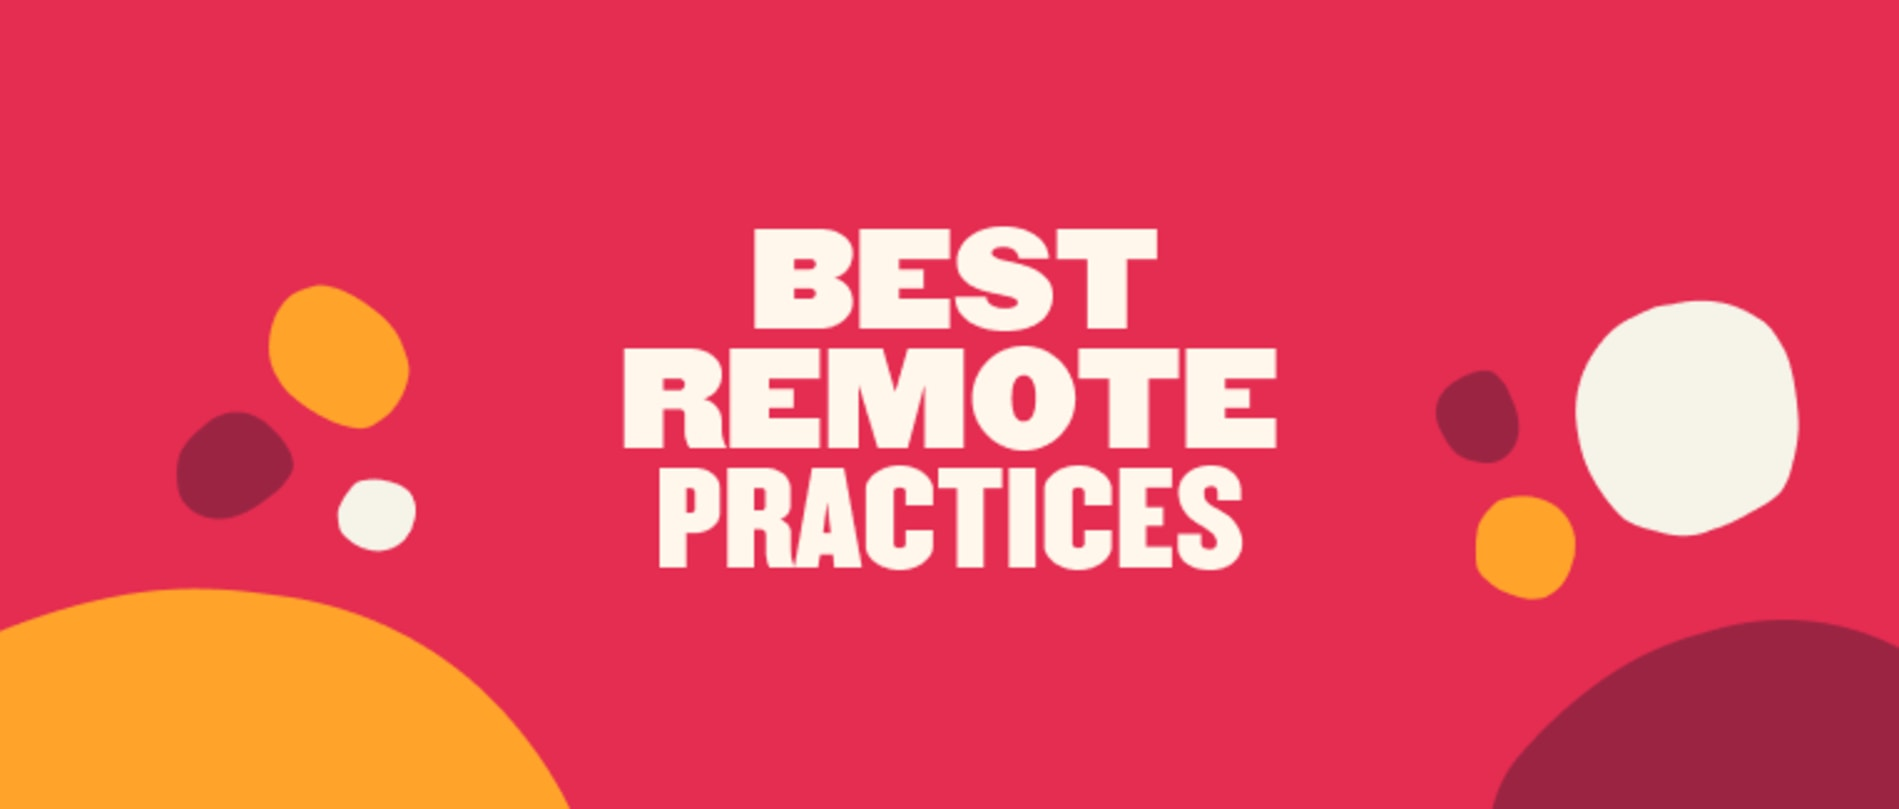 3 company best practices for increasing remote work productivity - Best-remote-practices-Blog-post.png